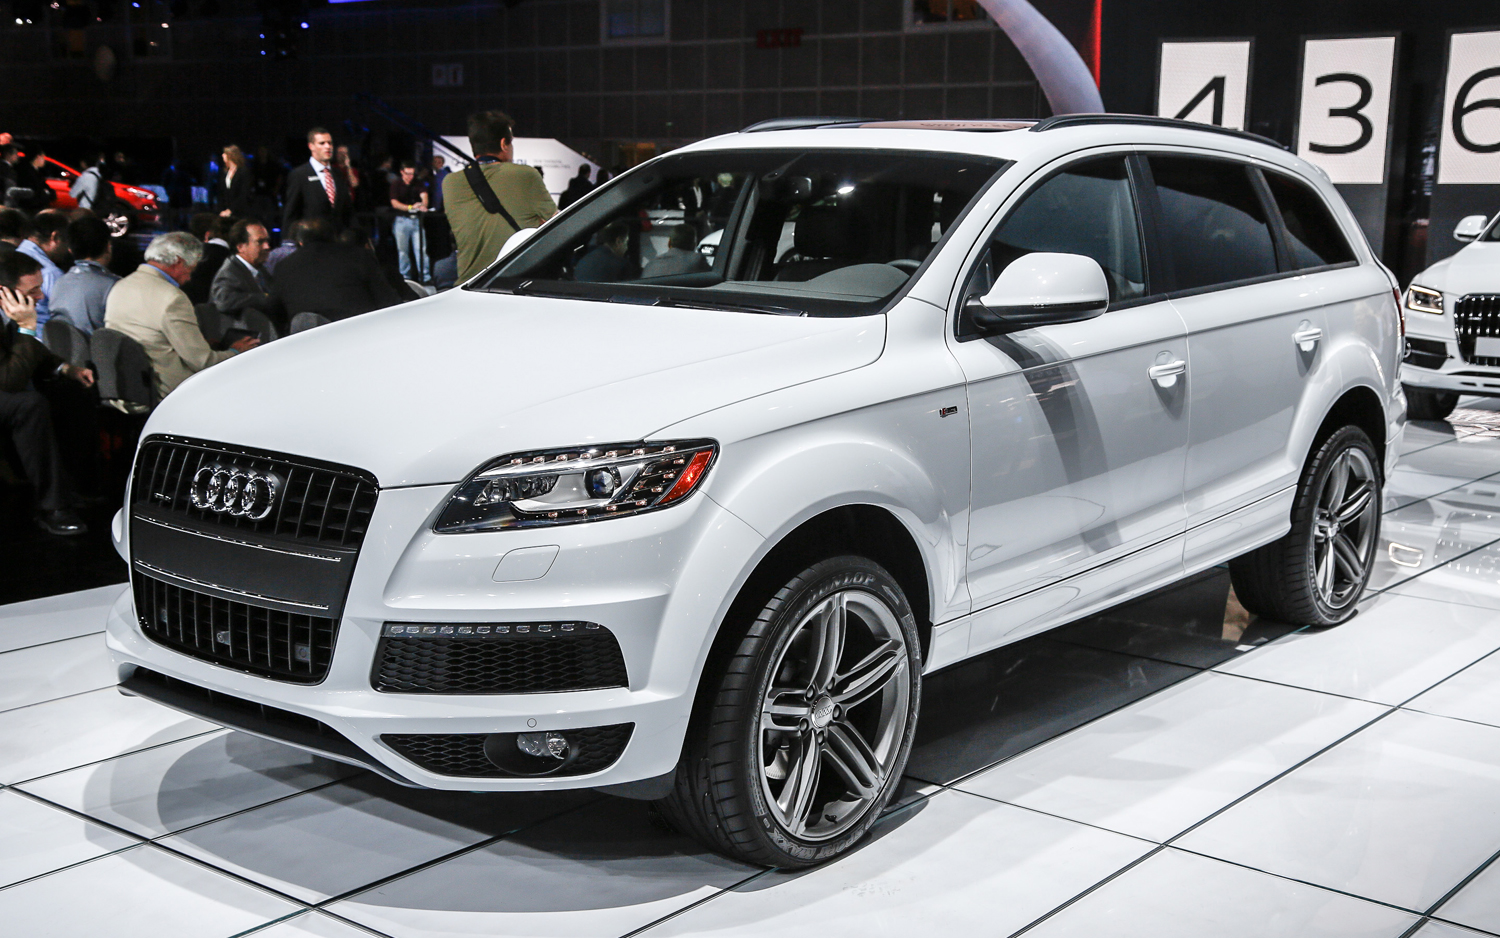 2014 Audi Q7 - Information and photos - MOMENTcar